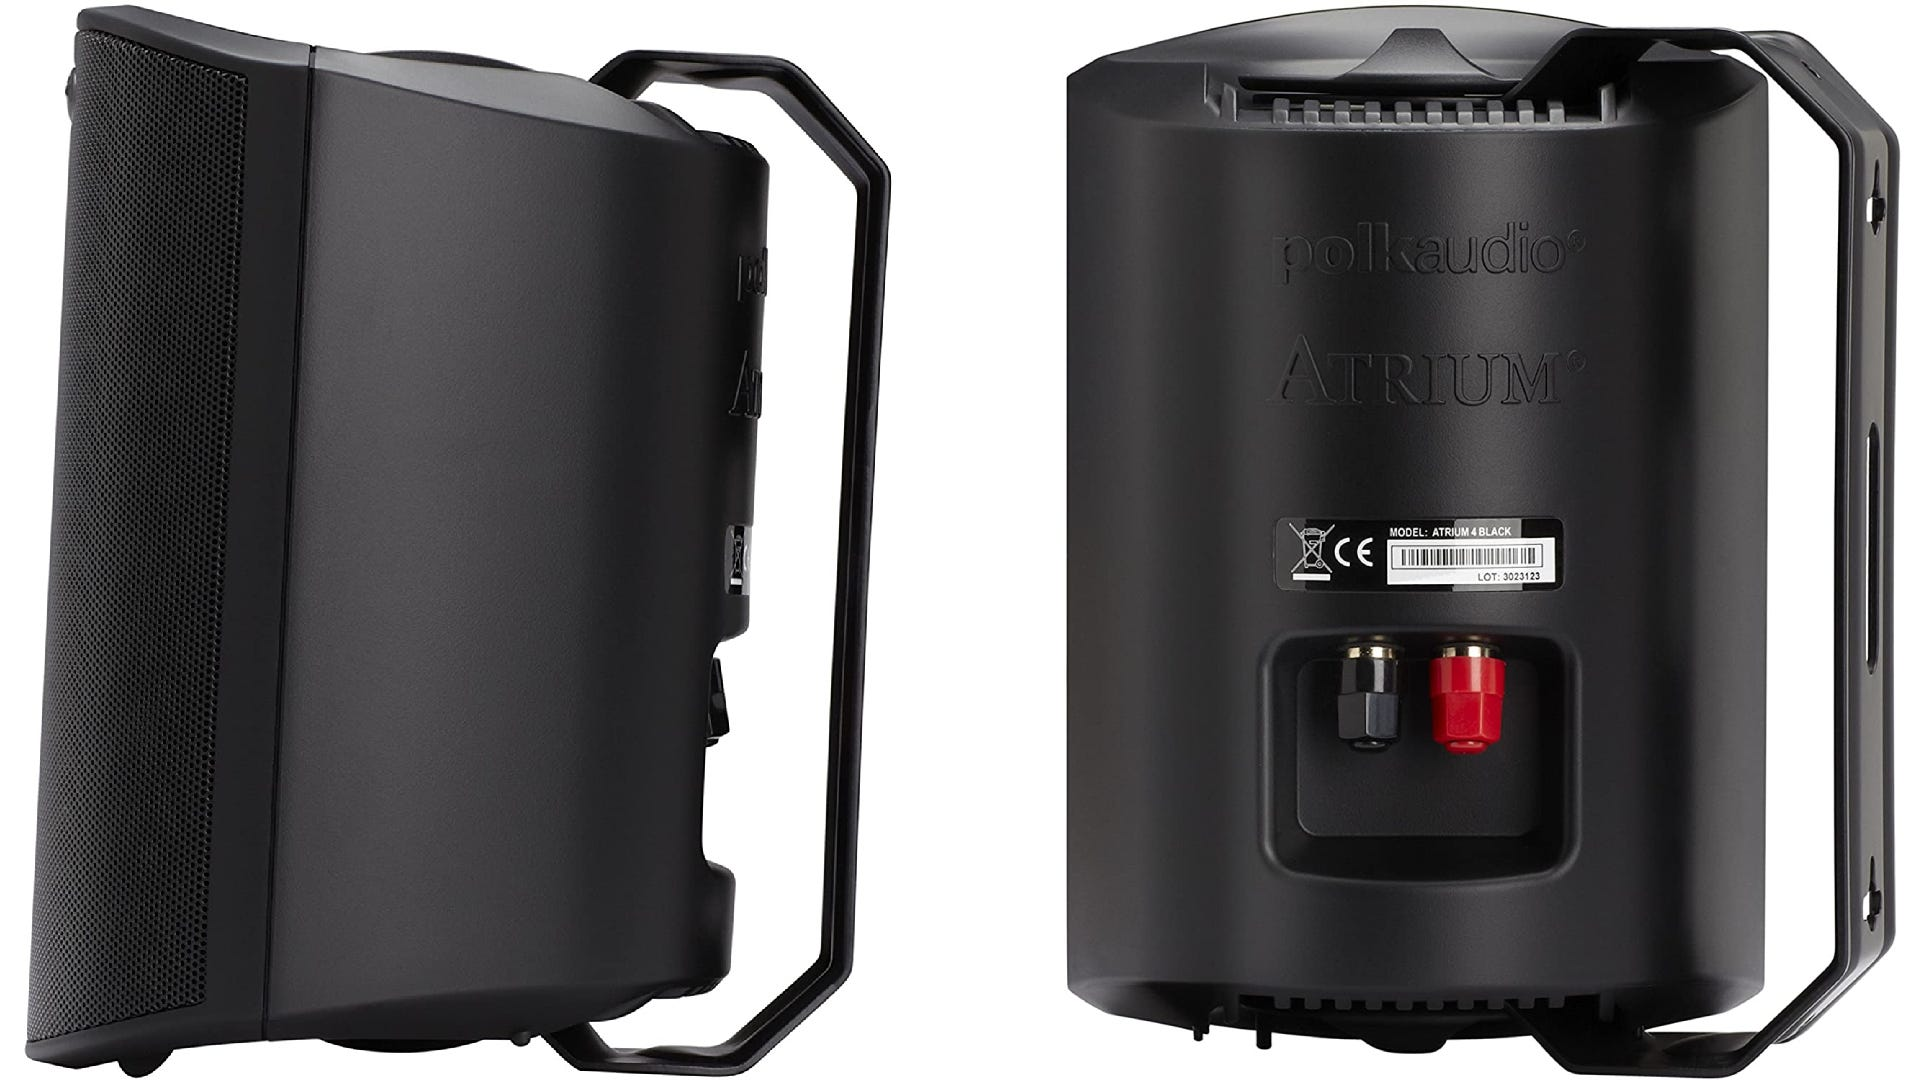 A side-by-side view of the profile and backside of a black, 7.5-inch speaker with a mounting rack, and a black and red audio connection ports.